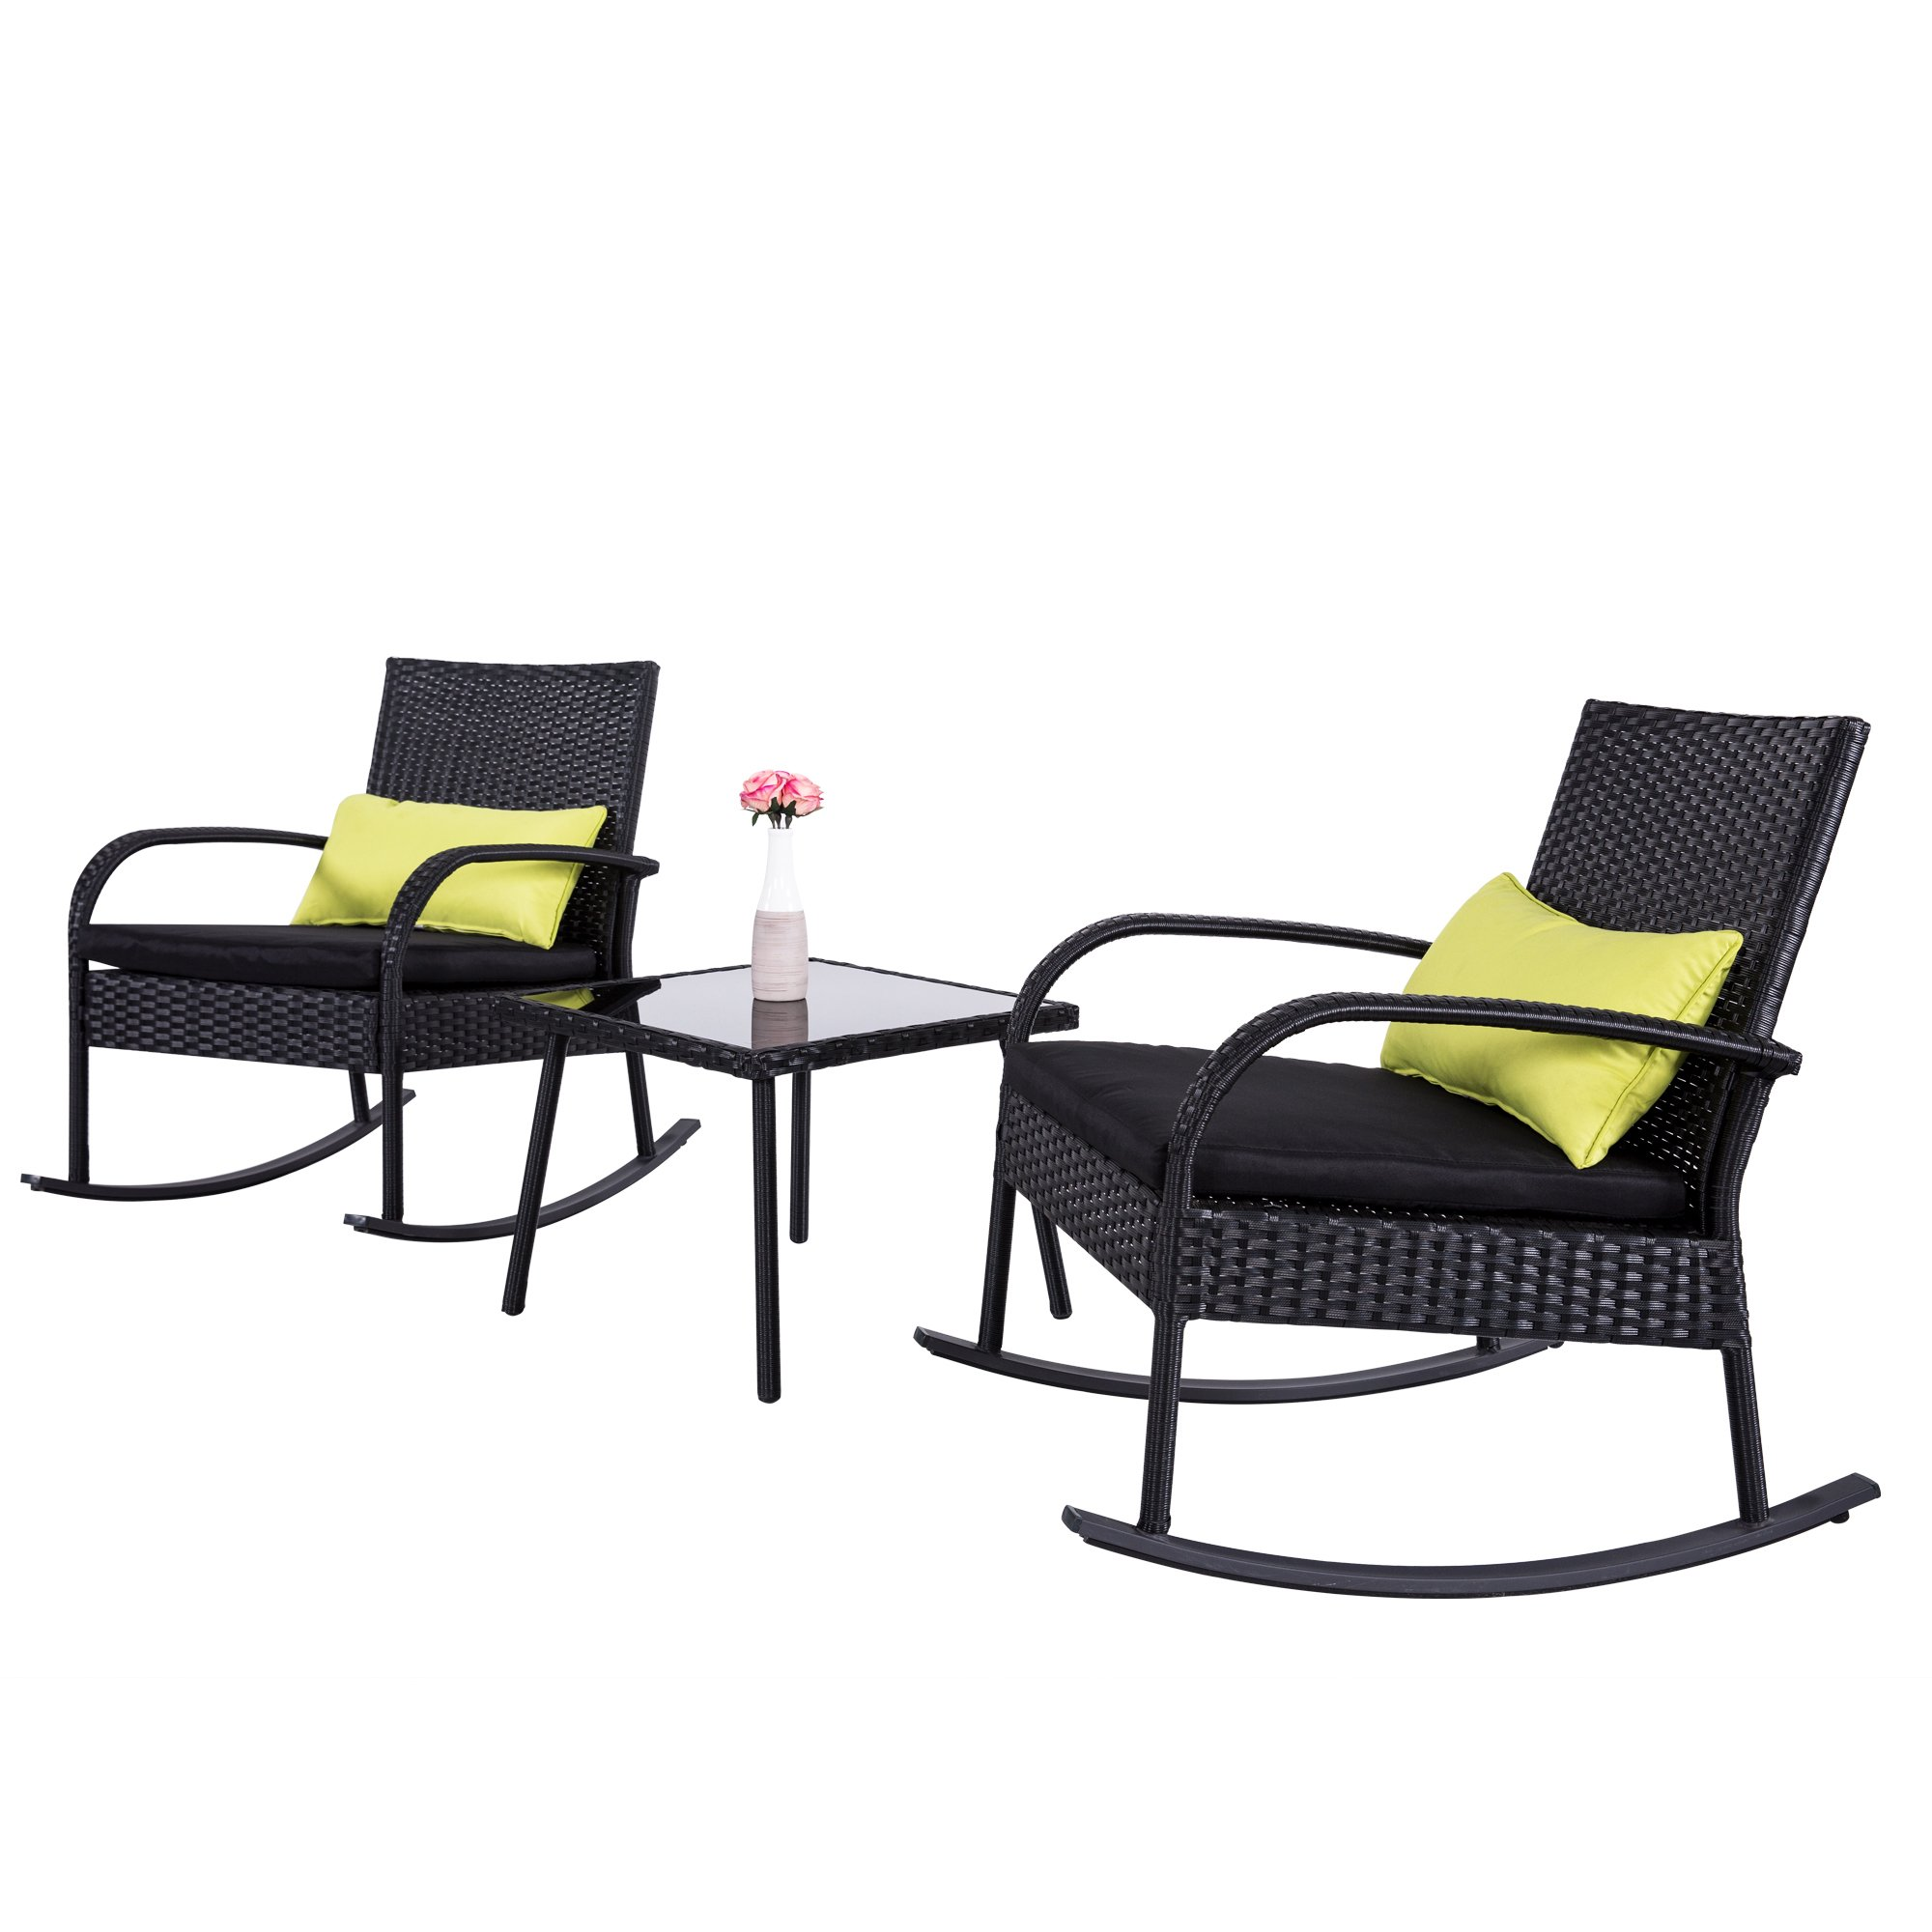 Cloud Mountain Outdoor 3 Piece Rocking Chair Bistro Set Rattan Wicker Patio Set Furniture - Two Chairs with Glass Coffee Table, Black Cushion with Black Rattan